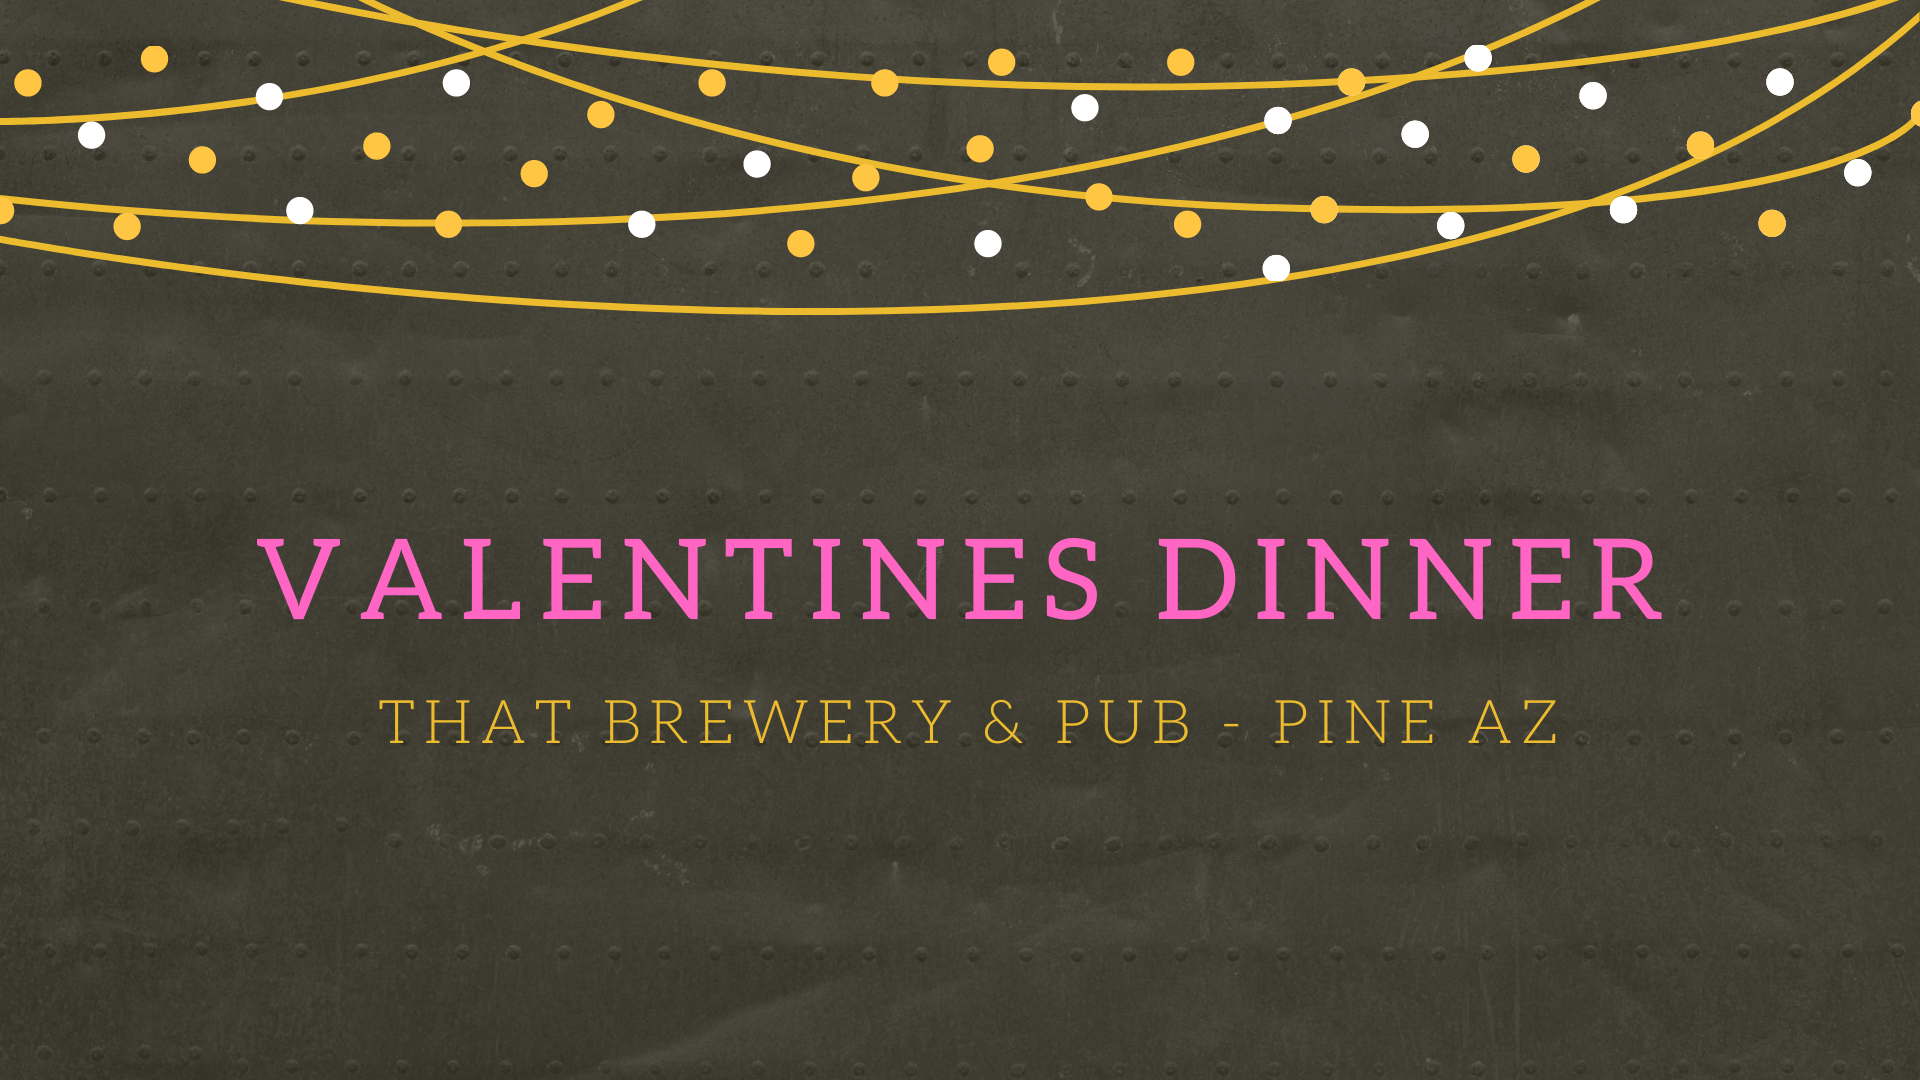 Valentines Dinner at THAT Brewery & Pub